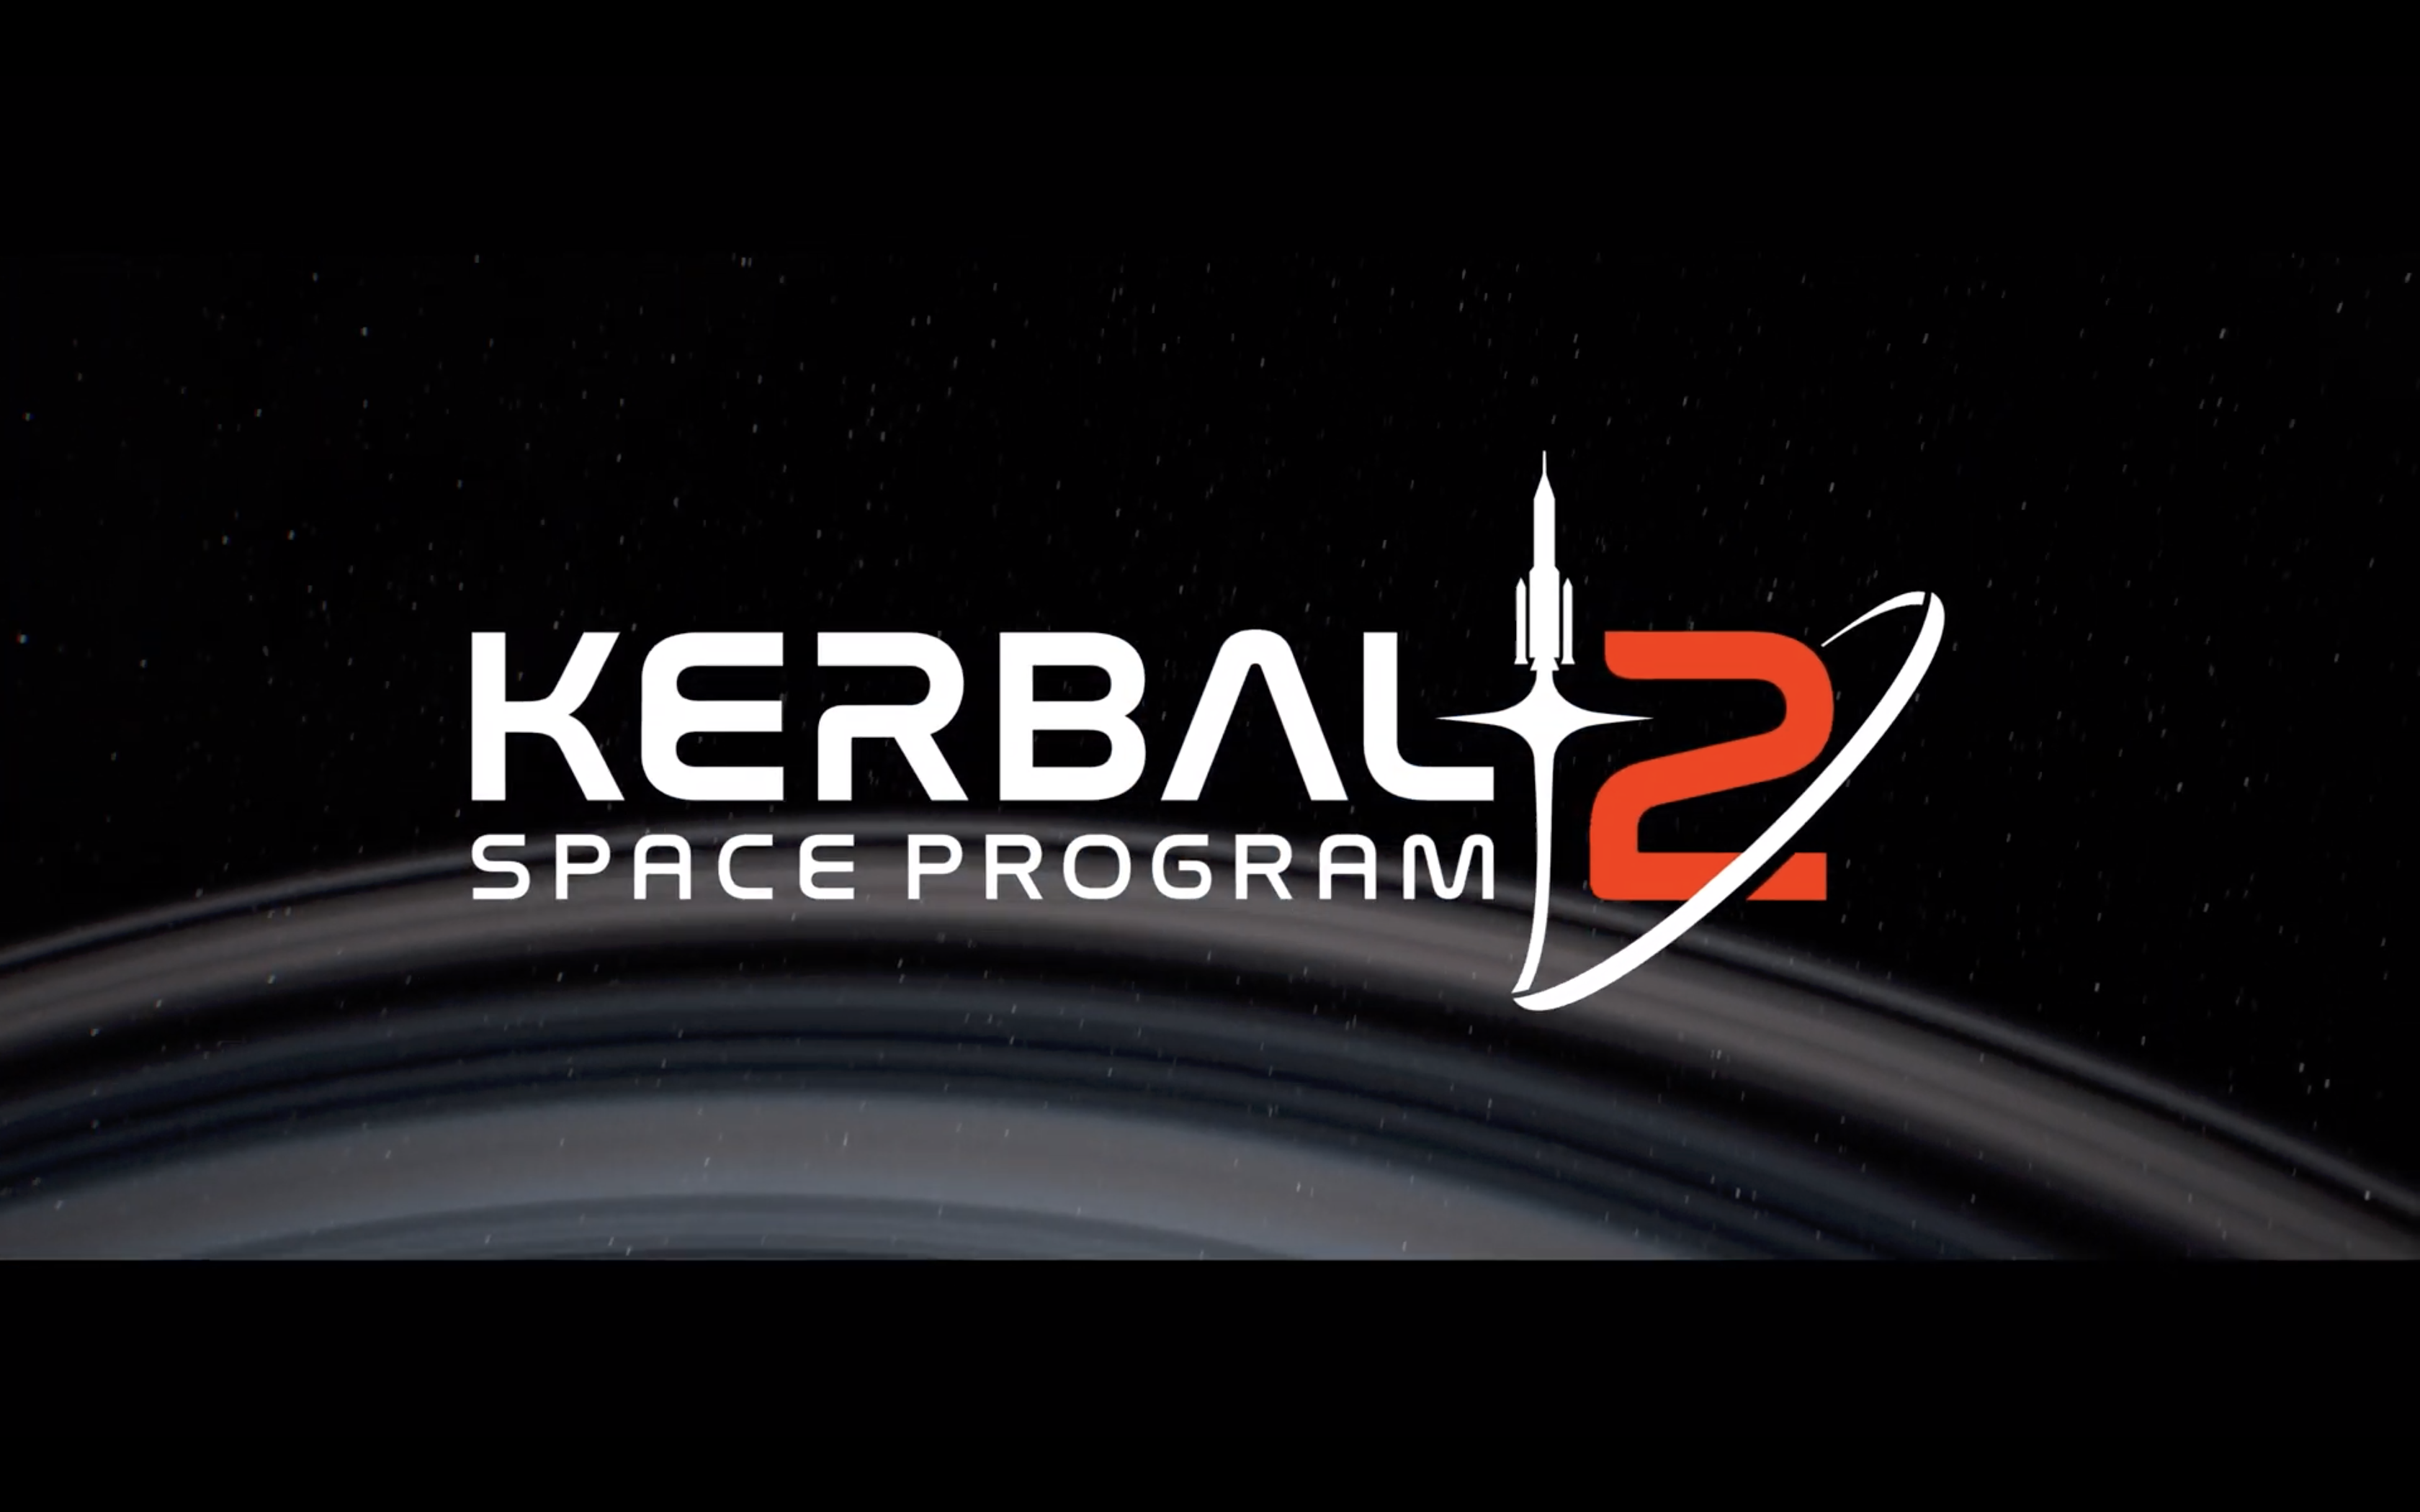 Kerbal Space Program 2 will take flight in 2020—here's the